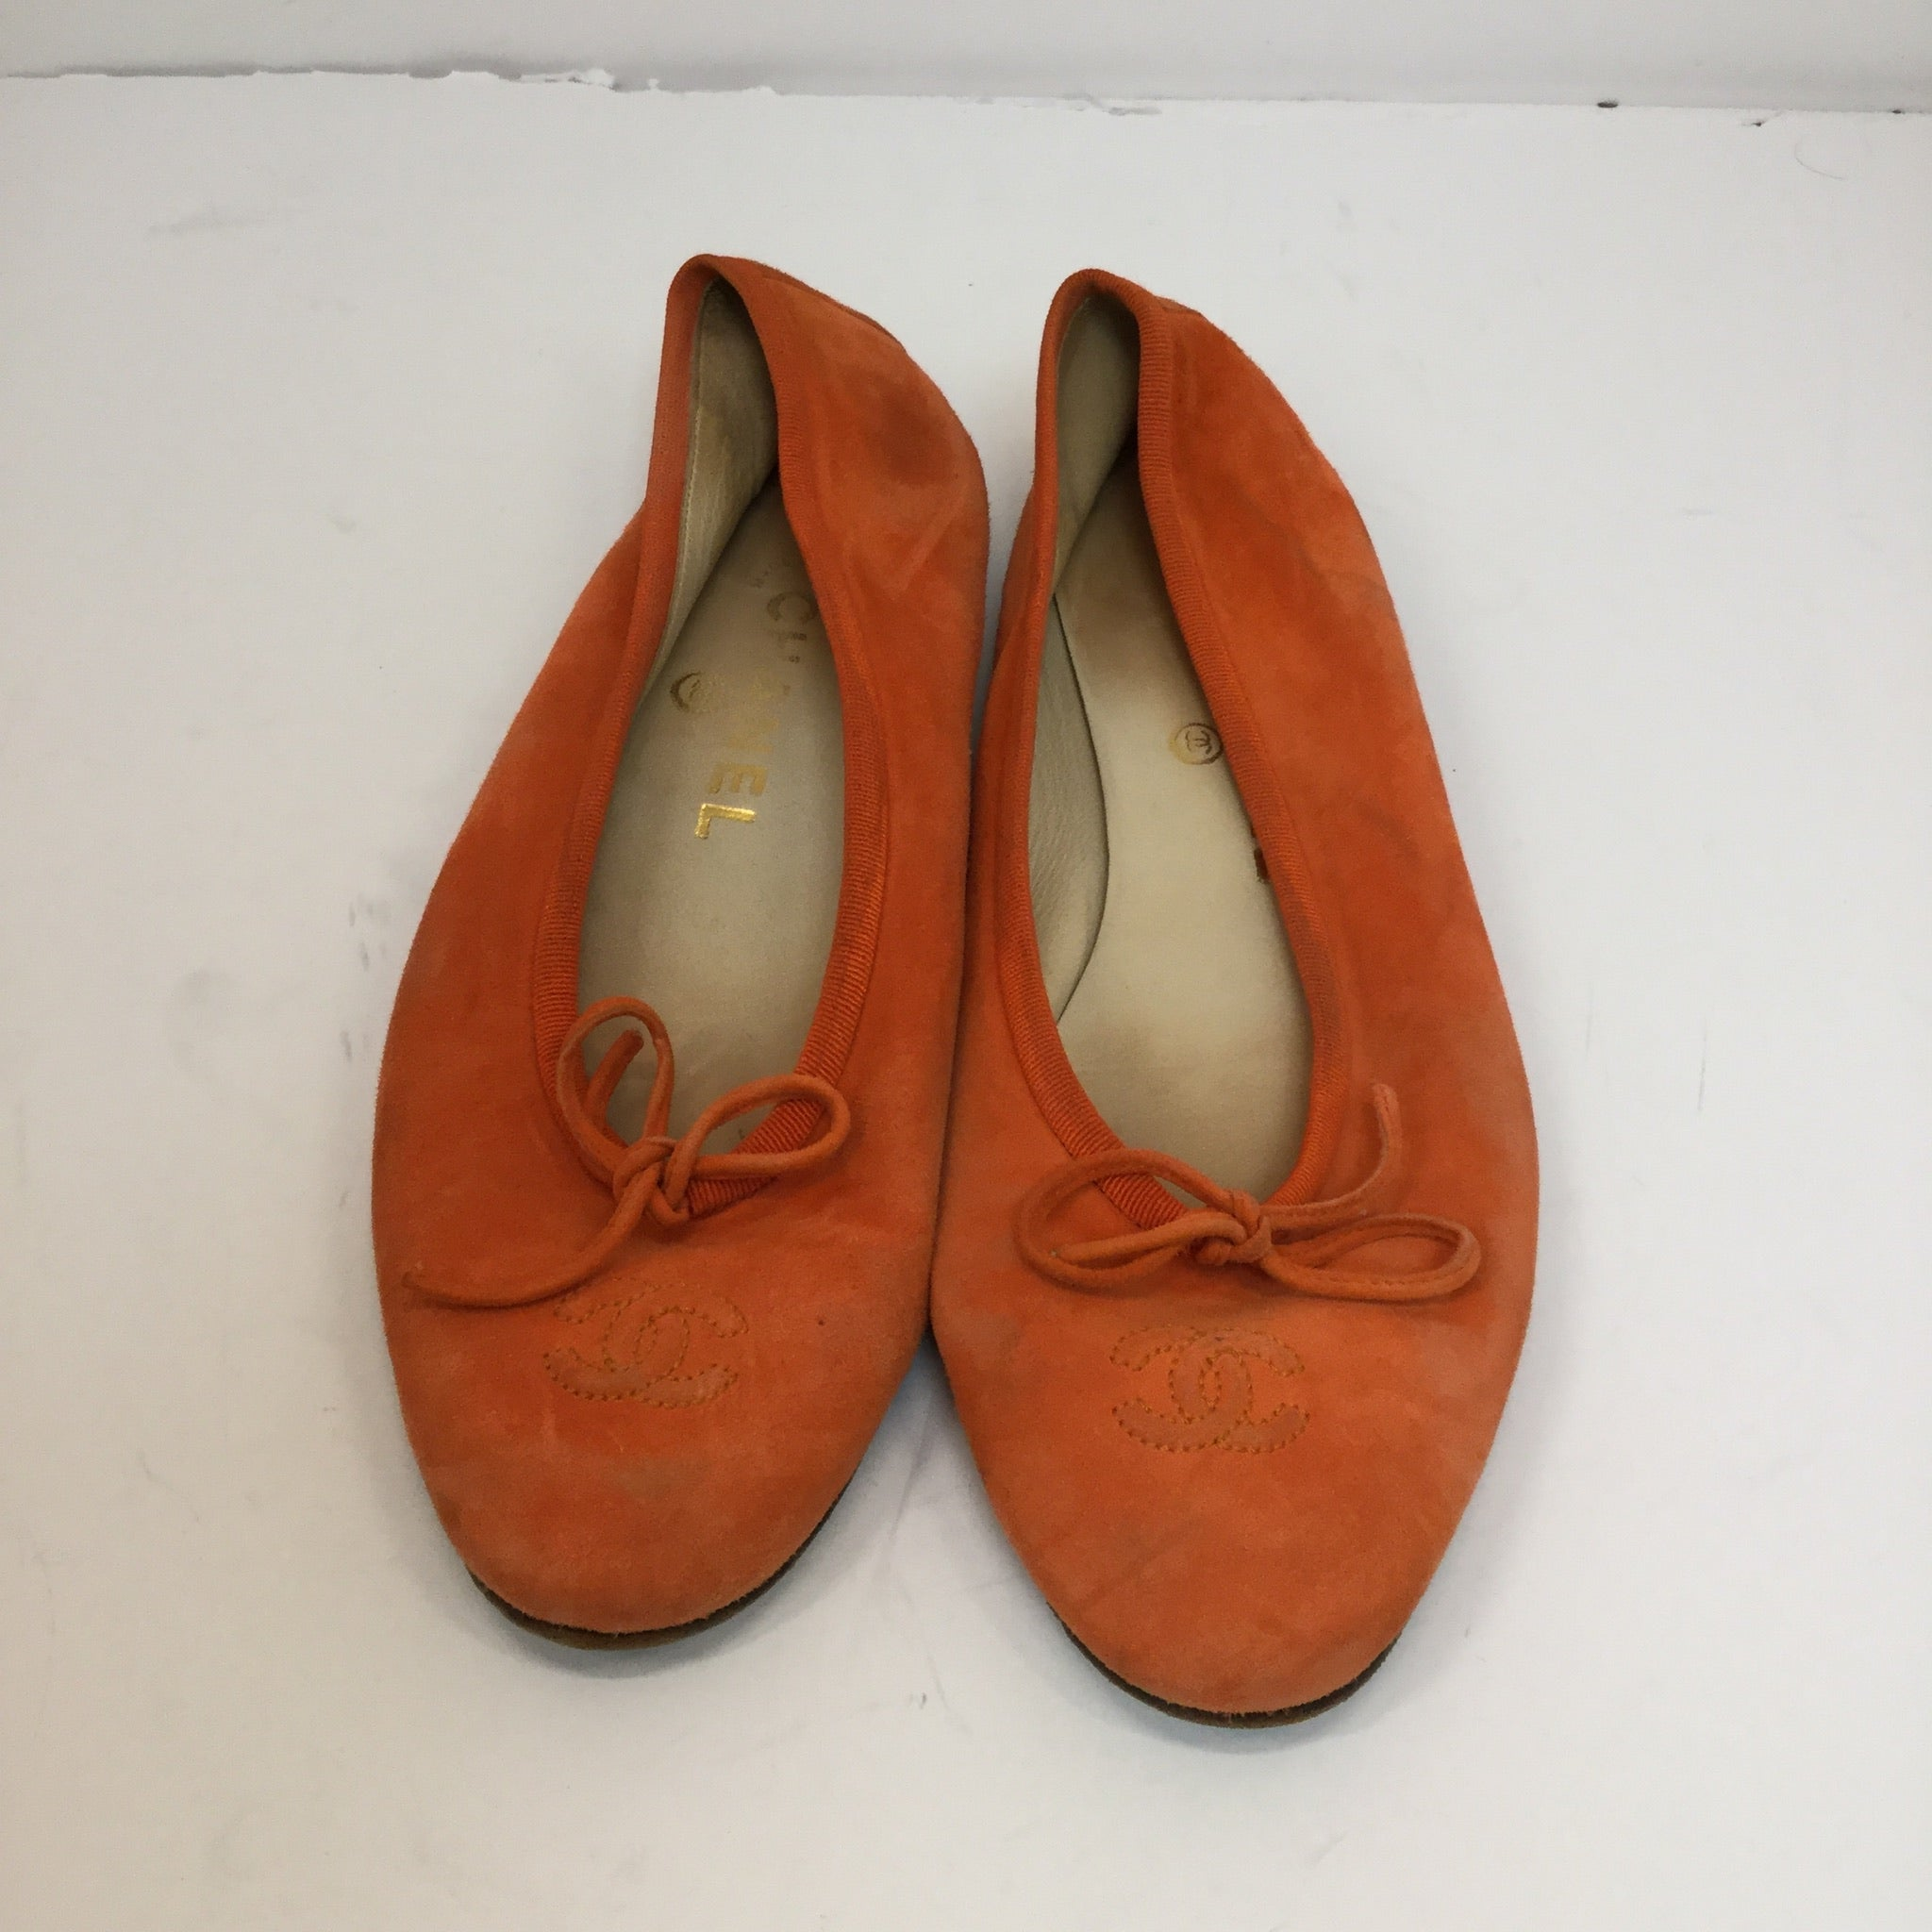 Chanel Vintage Flats - Size 38